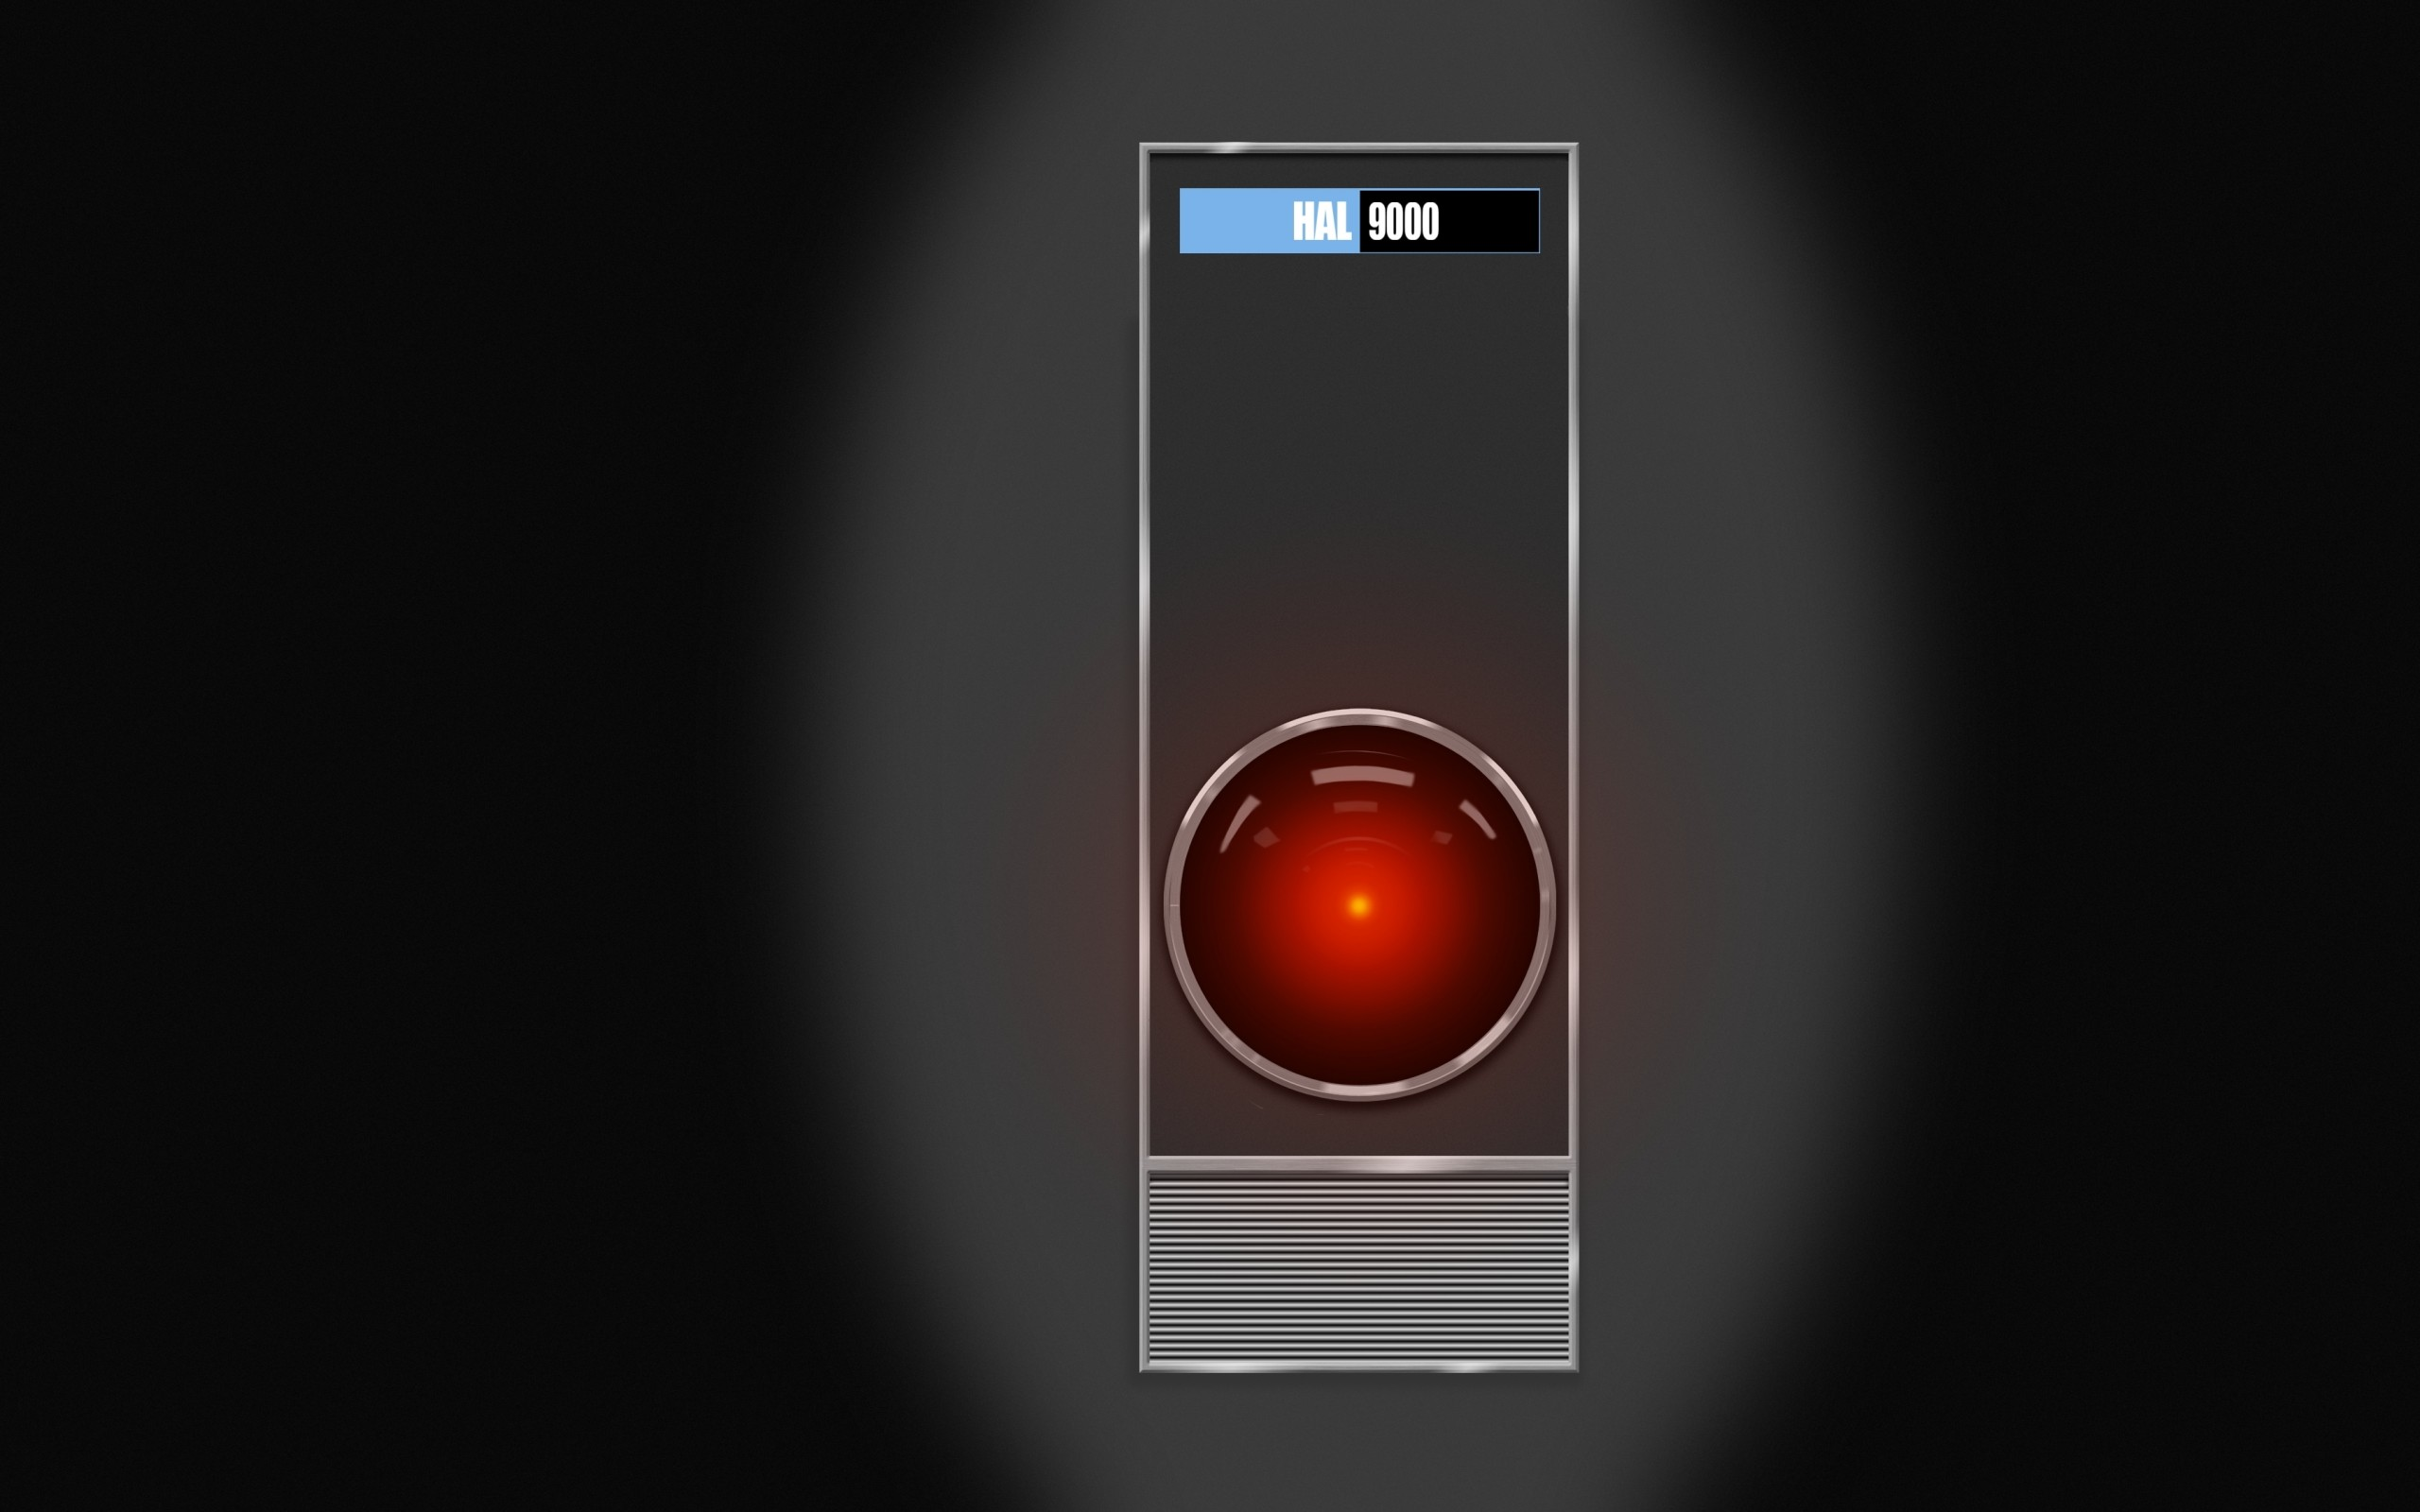 2560x1600 2001 a space odyssey hal9000 4005x2250 wallpaper Art HD Wallpaper